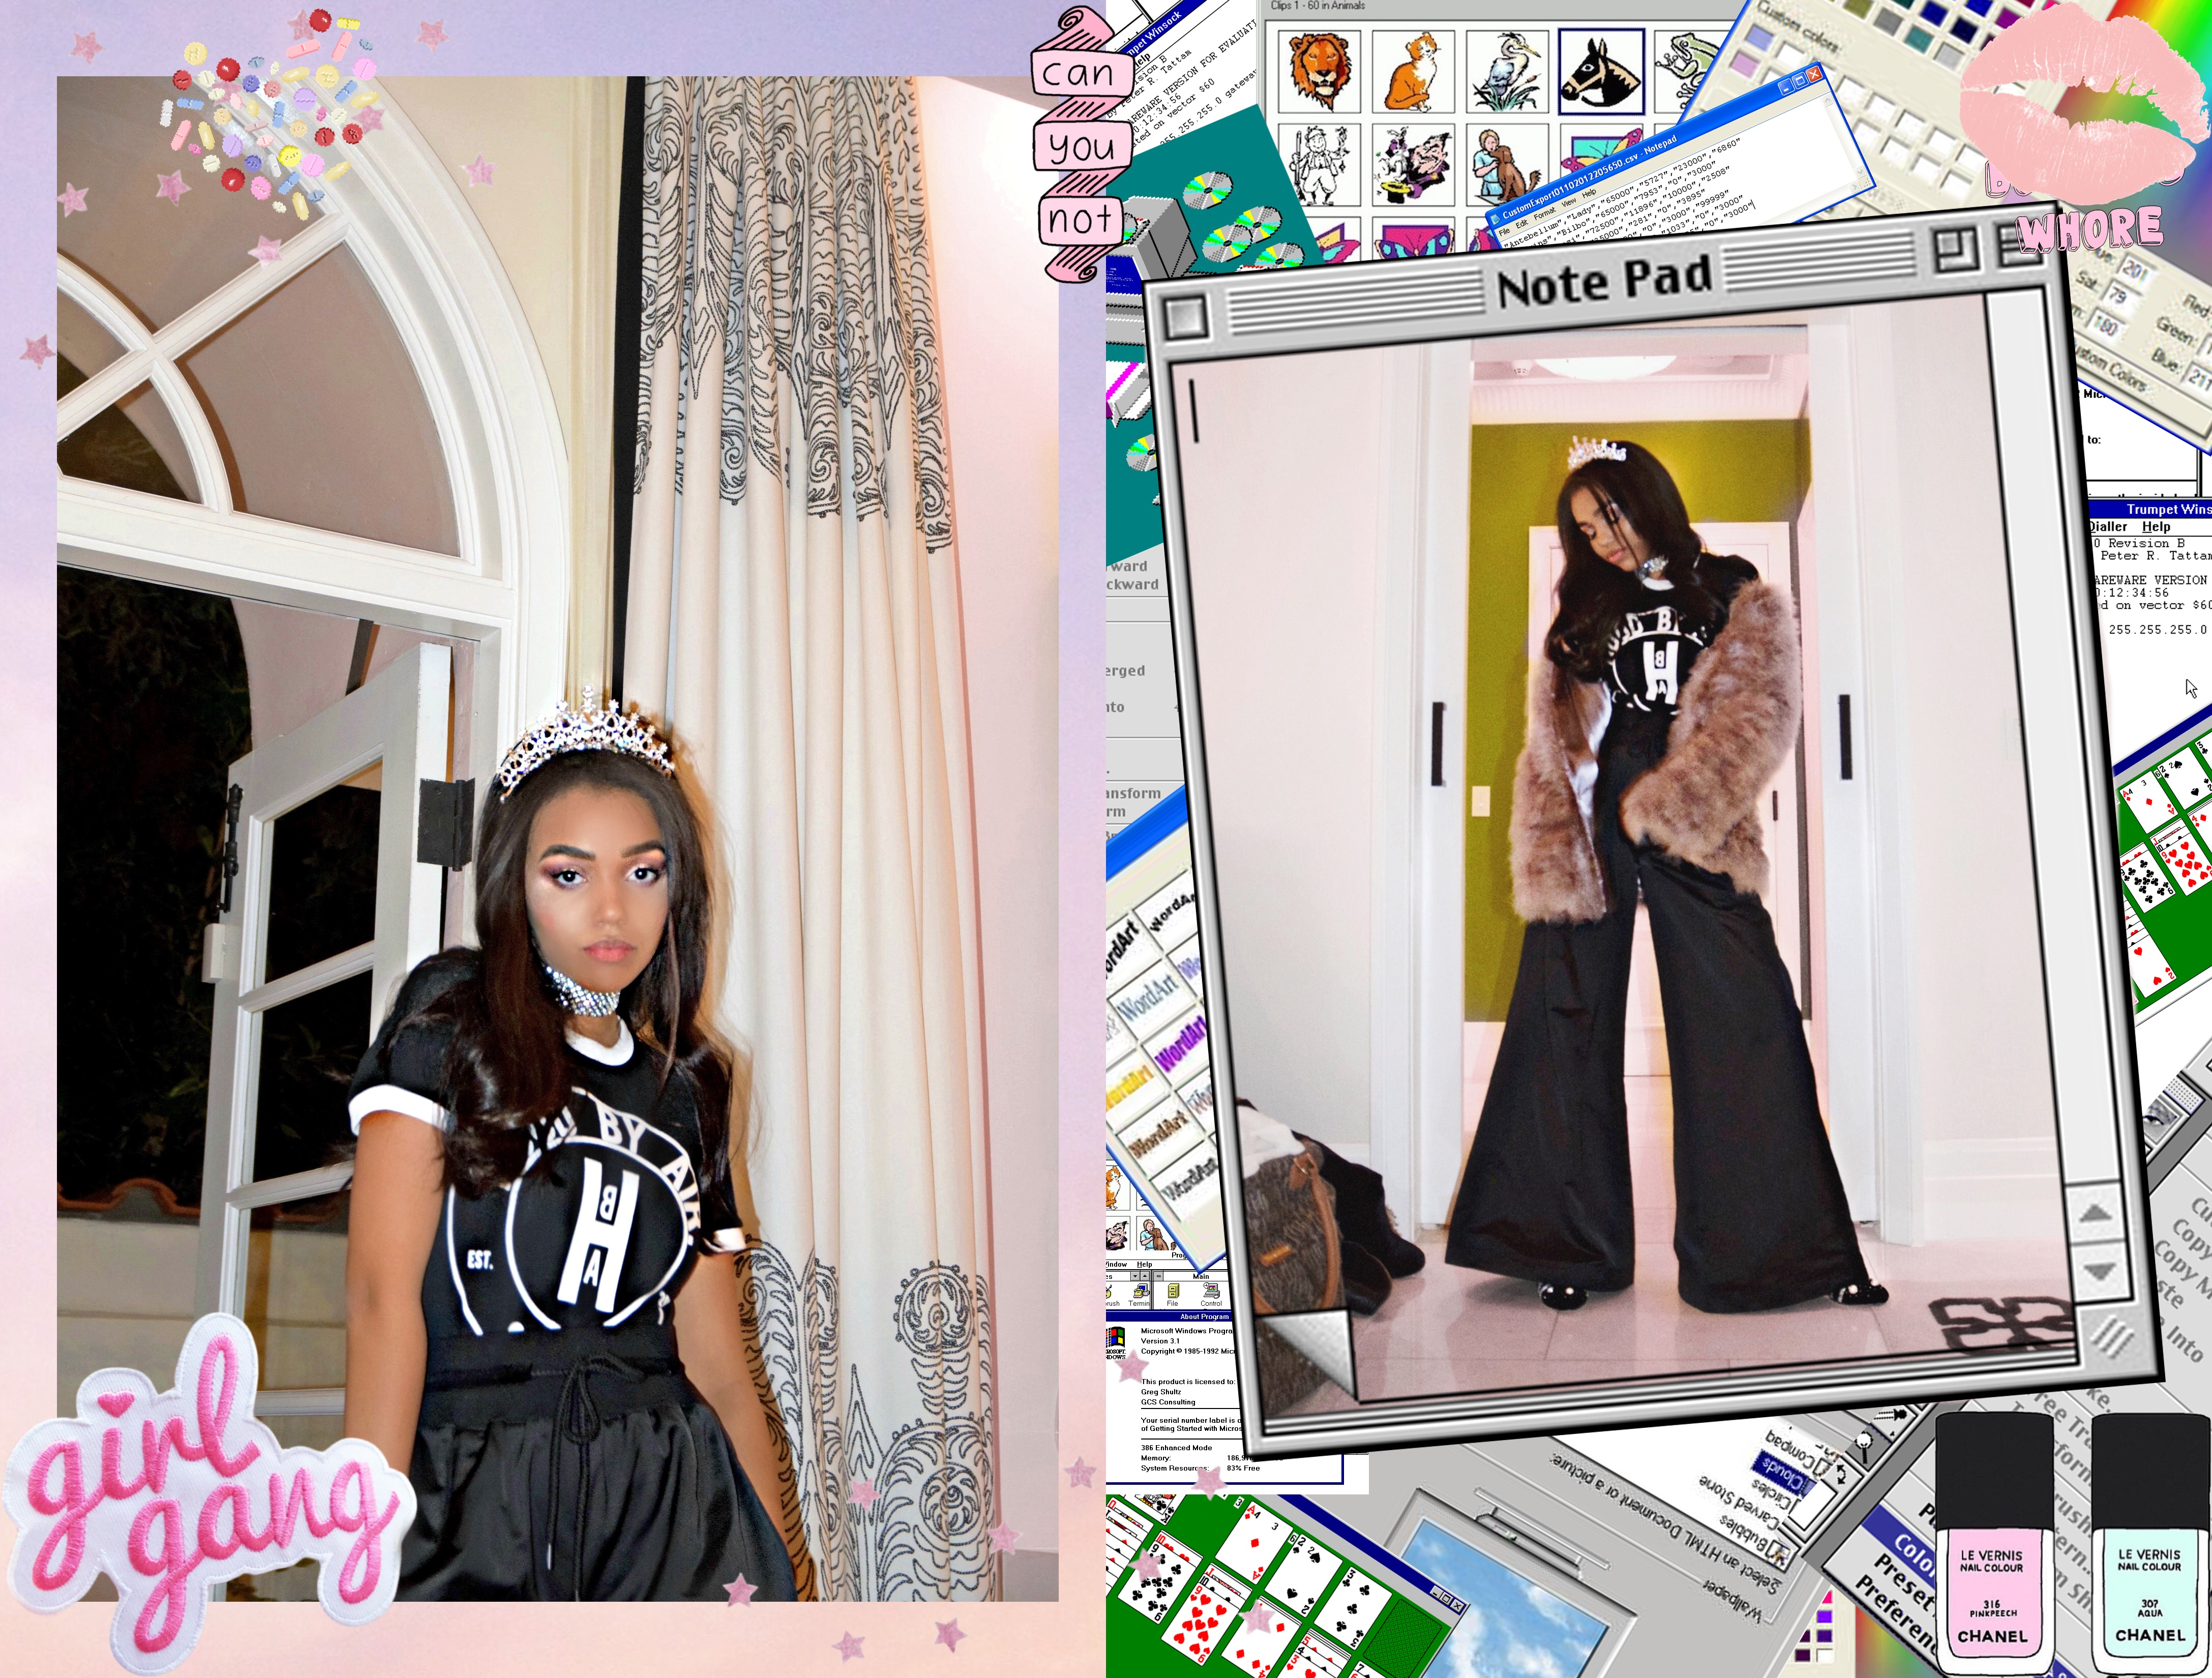 Birthday 2.0 // My 19th Birthday Diary // Los Angeles Fashion Blogger Daphne Blunt: To Style, With Love